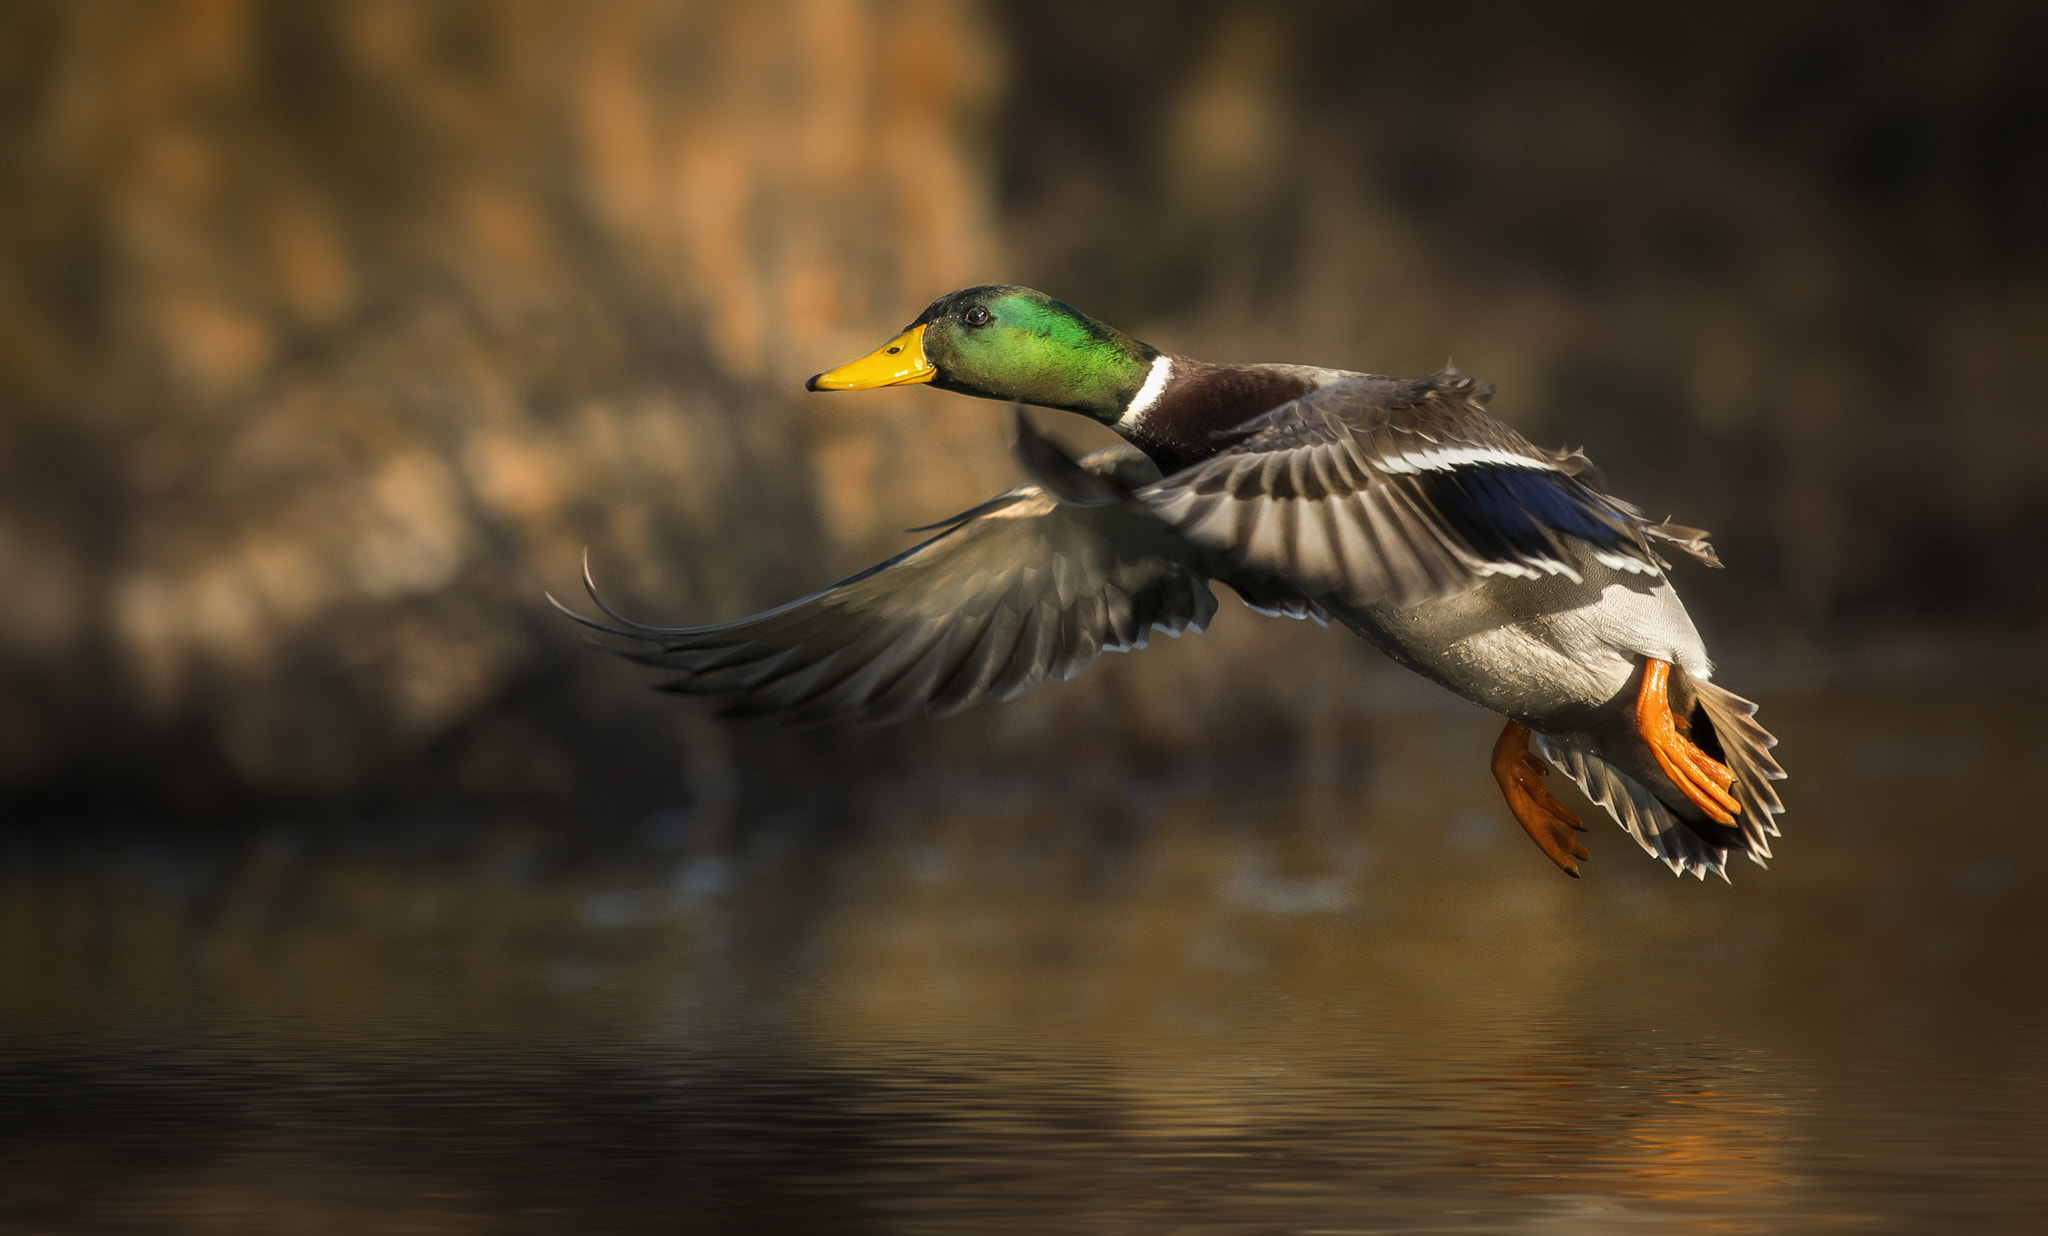 Photograph fly, fly, fly by Detlef Knapp on 500px